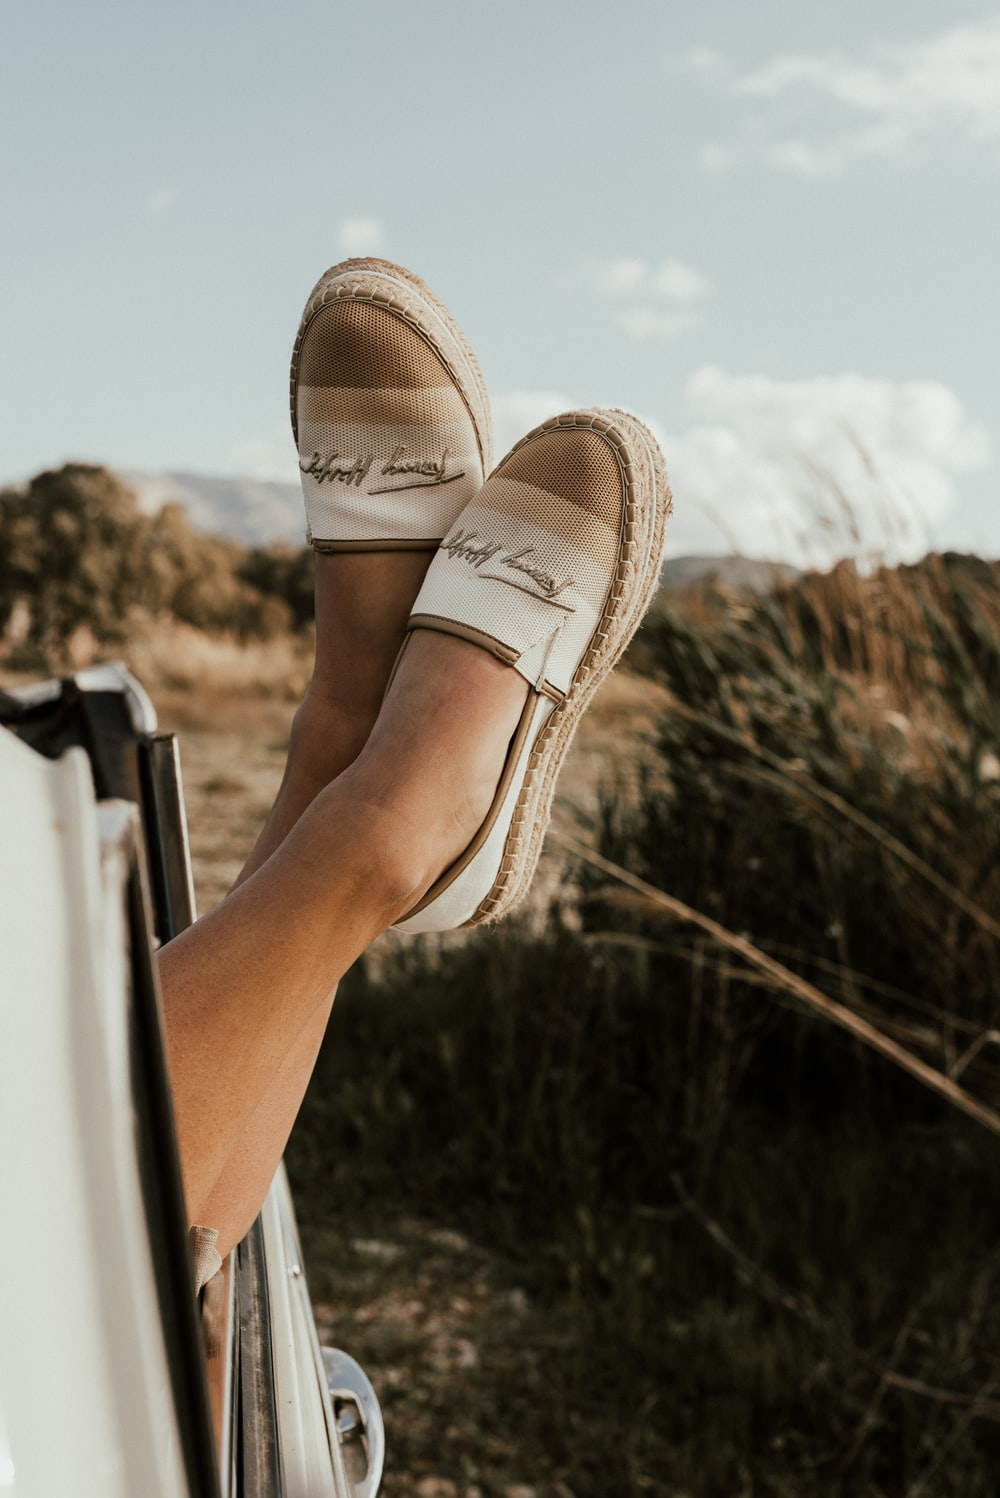 person wearing brown slip on shoes